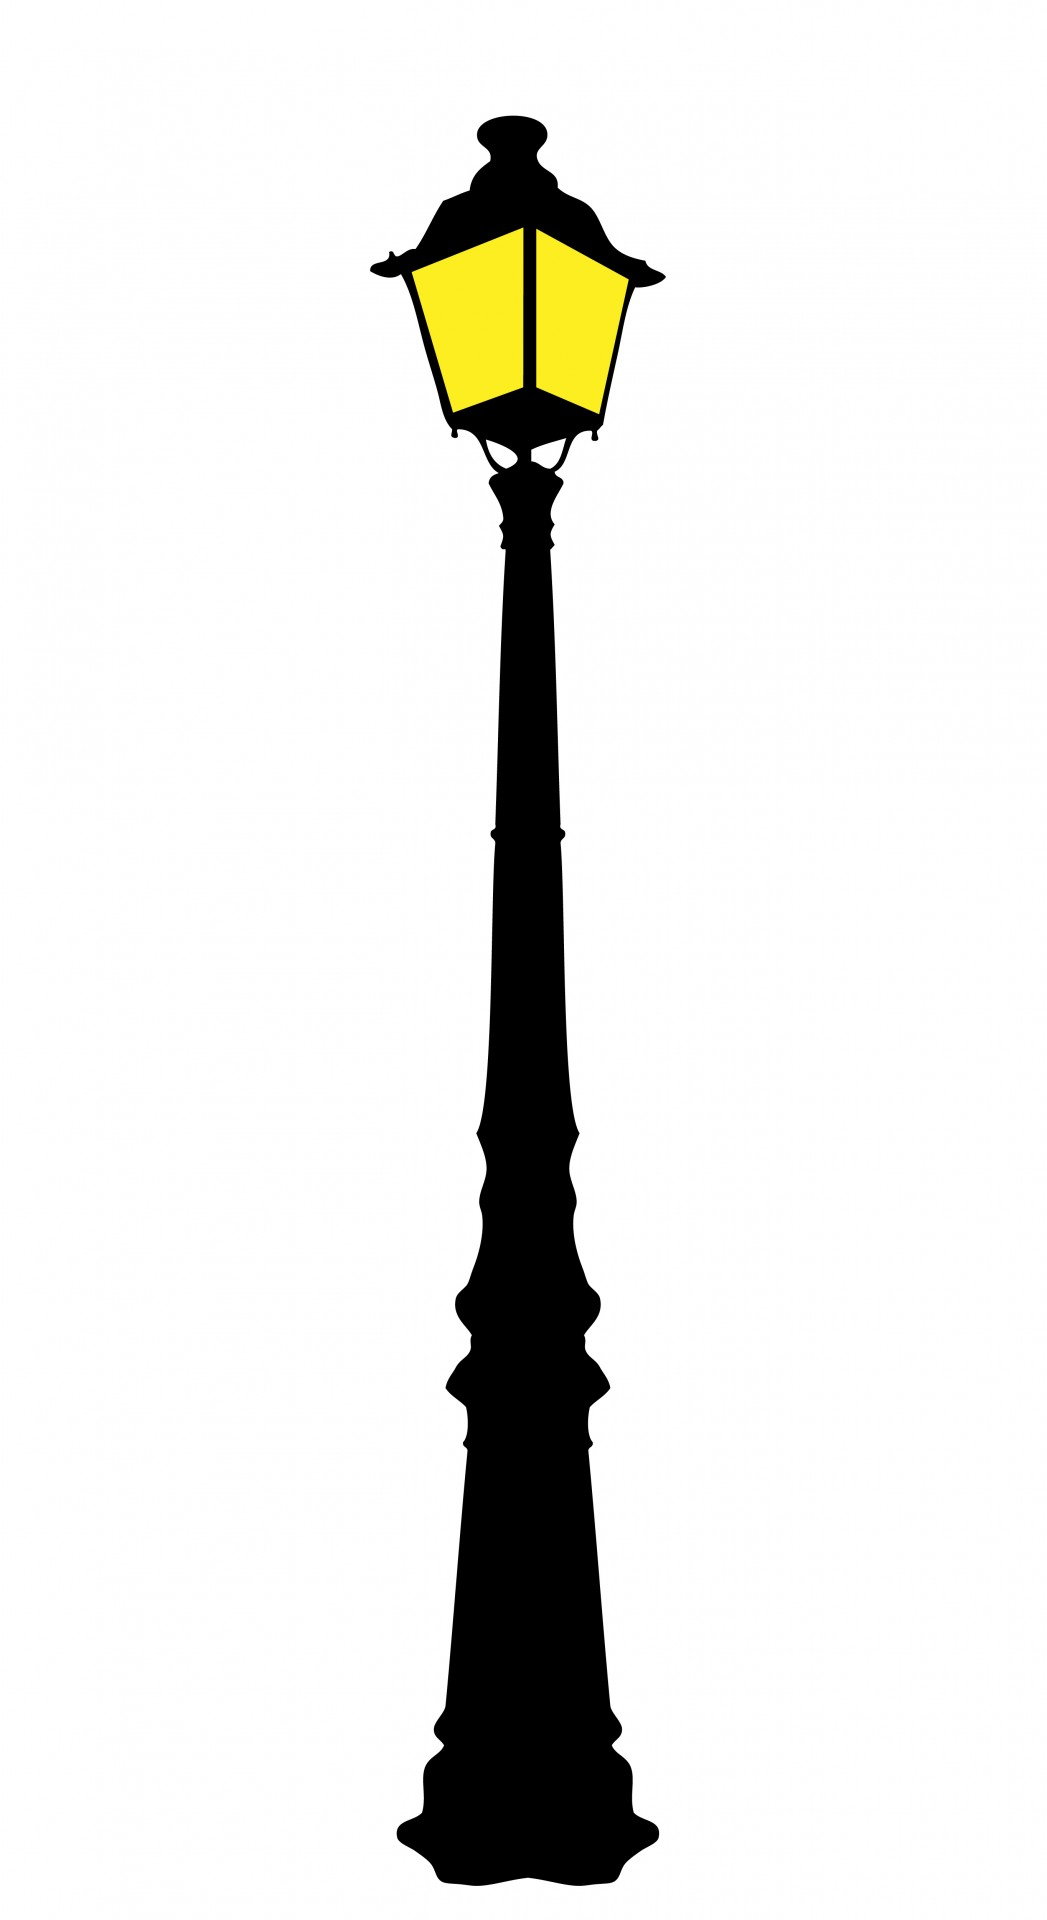 Vintage Street Lamp Clipart Free Stock Photo - Public Domain Pictures